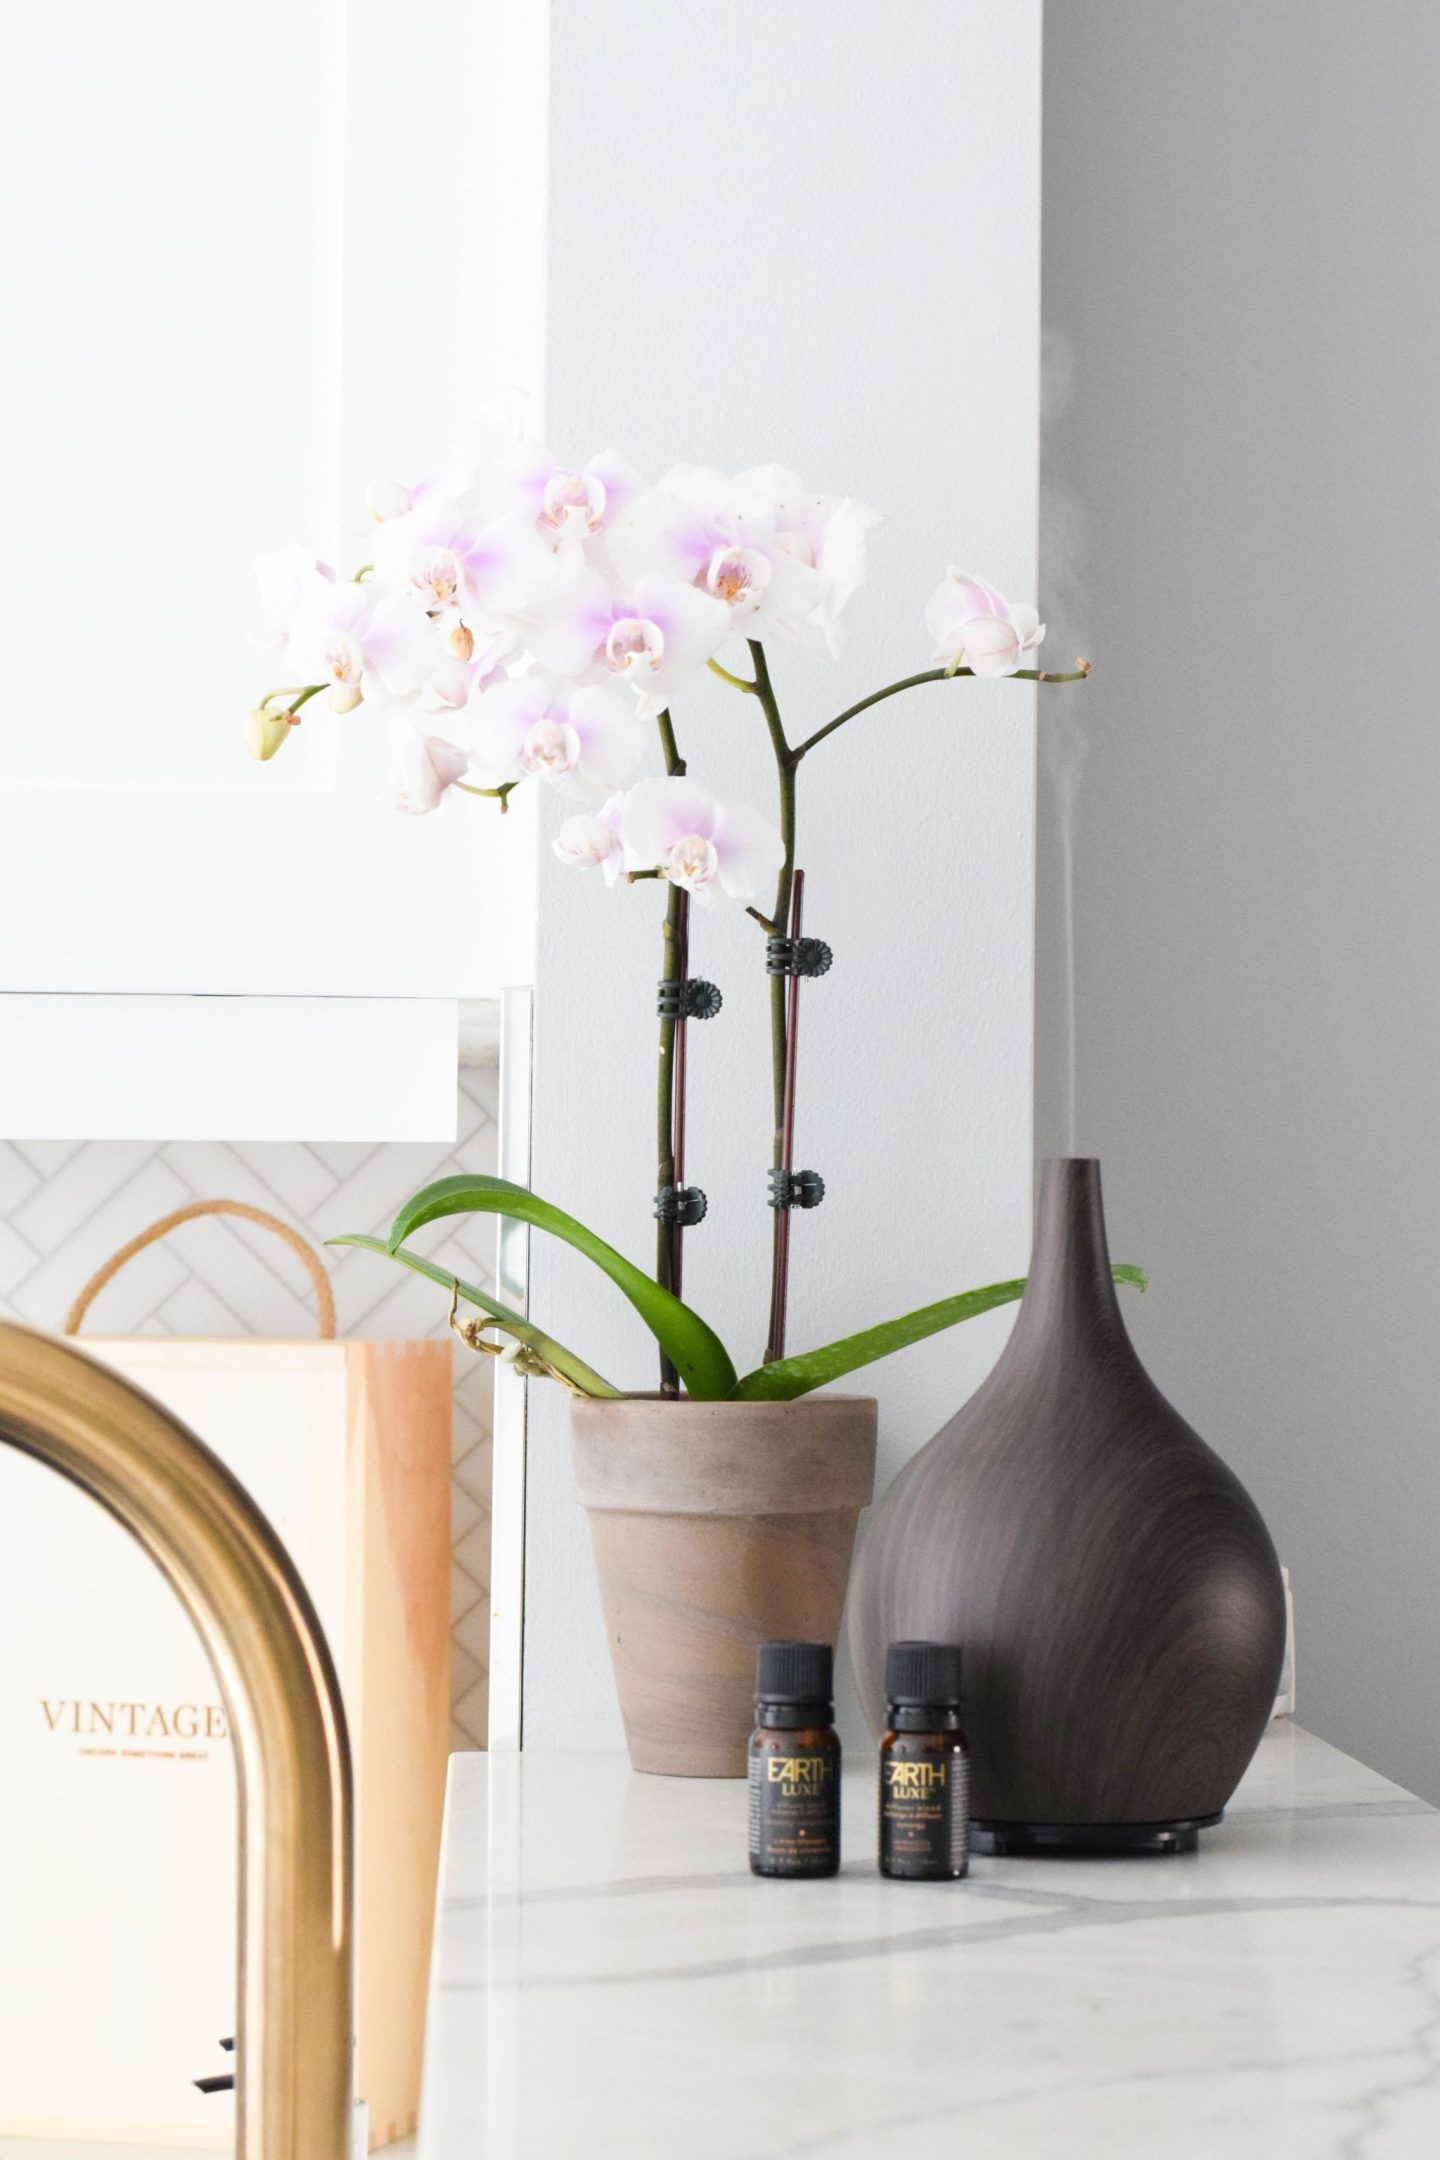 Wellness Wednesday: Why You Should Have a Diffuser At Home